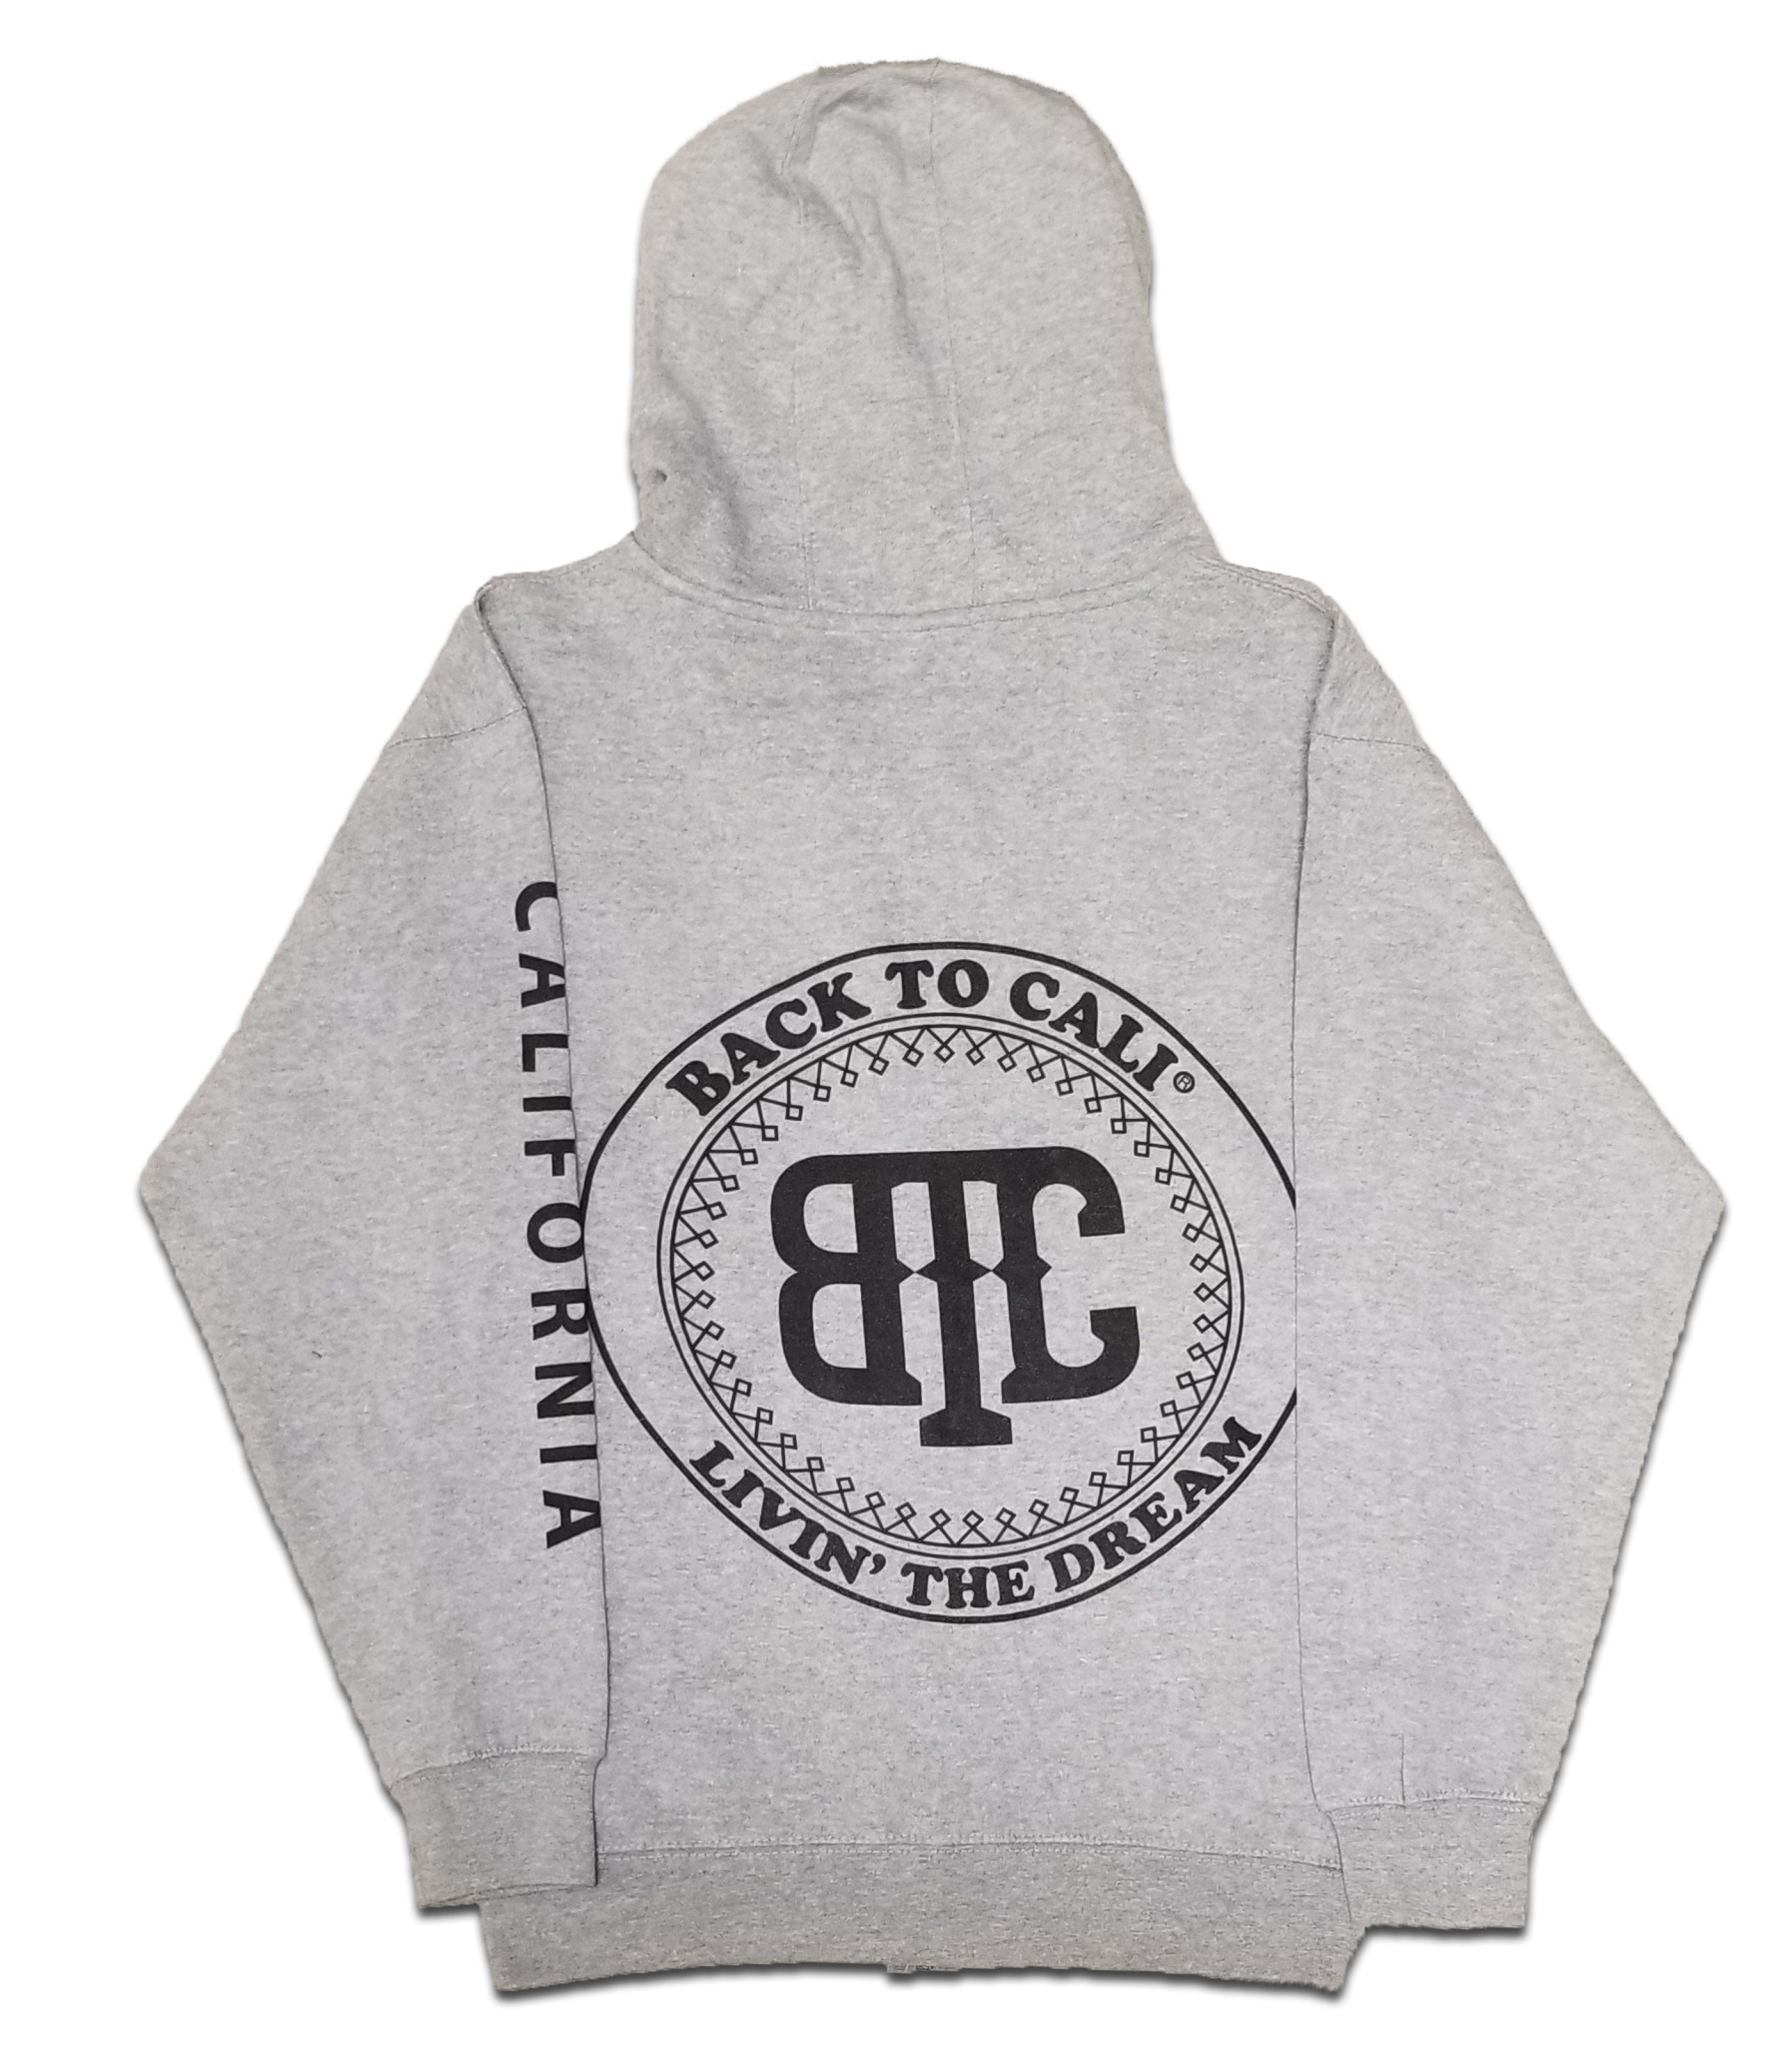 BackToCali Back To Cali Livin the dream Circle Patch - zip up California Heather Gray